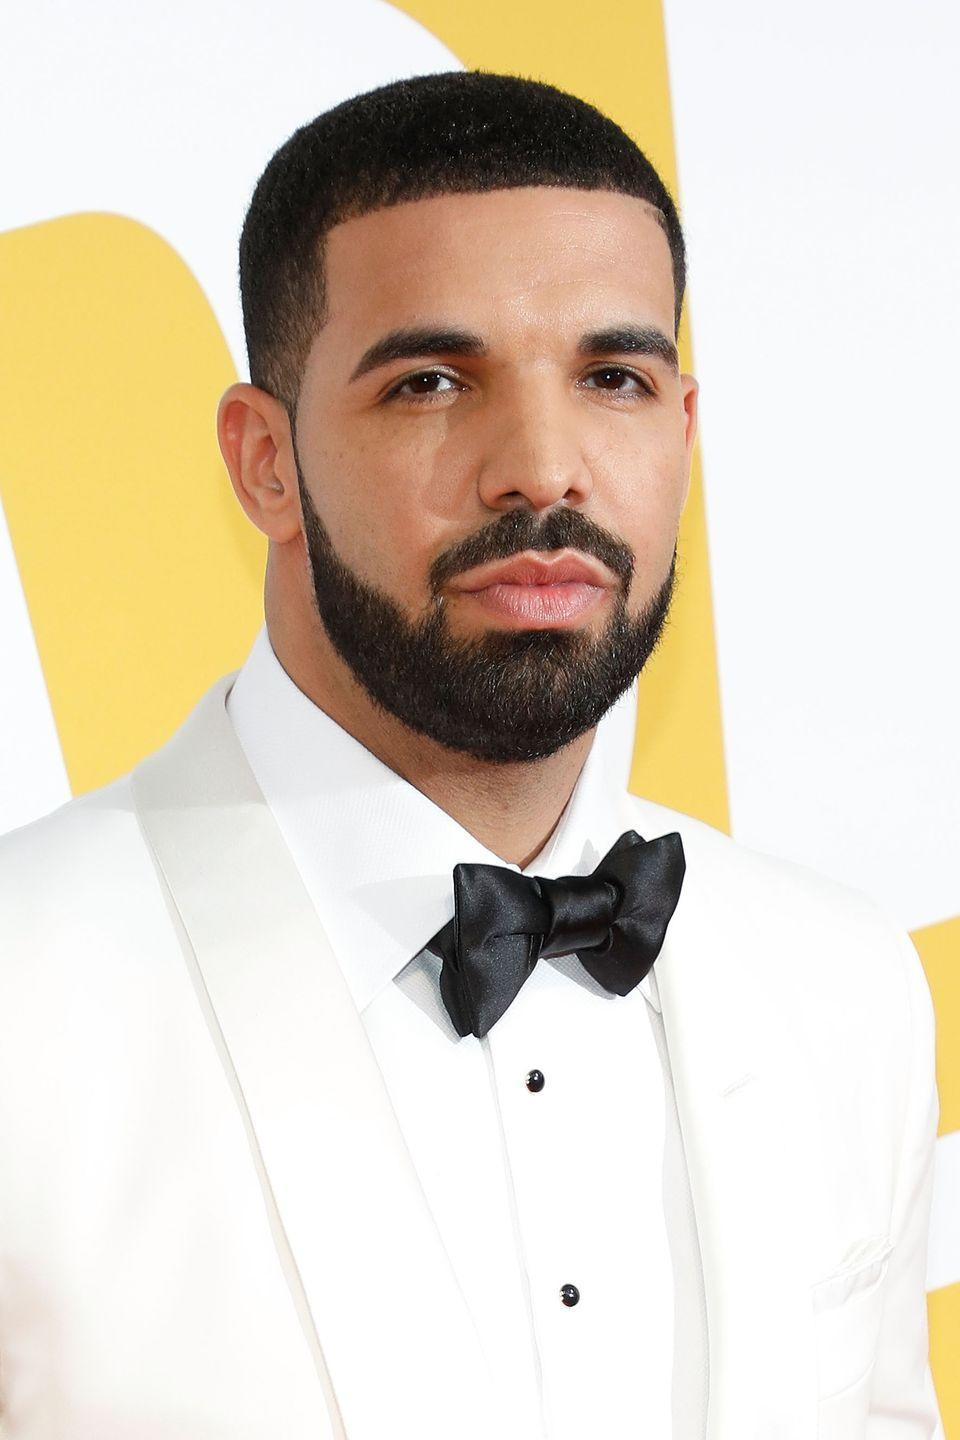 "<p><strong>Real name:</strong> <a href=""https://www.imdb.com/name/nm1013044/bio"" rel=""nofollow noopener"" target=""_blank"" data-ylk=""slk:Aubrey Drake Graham"" class=""link rapid-noclick-resp"">Aubrey Drake Graham</a></p><p>Like Drake Bell, the rapper goes by his middle name instead of his first one.</p>"